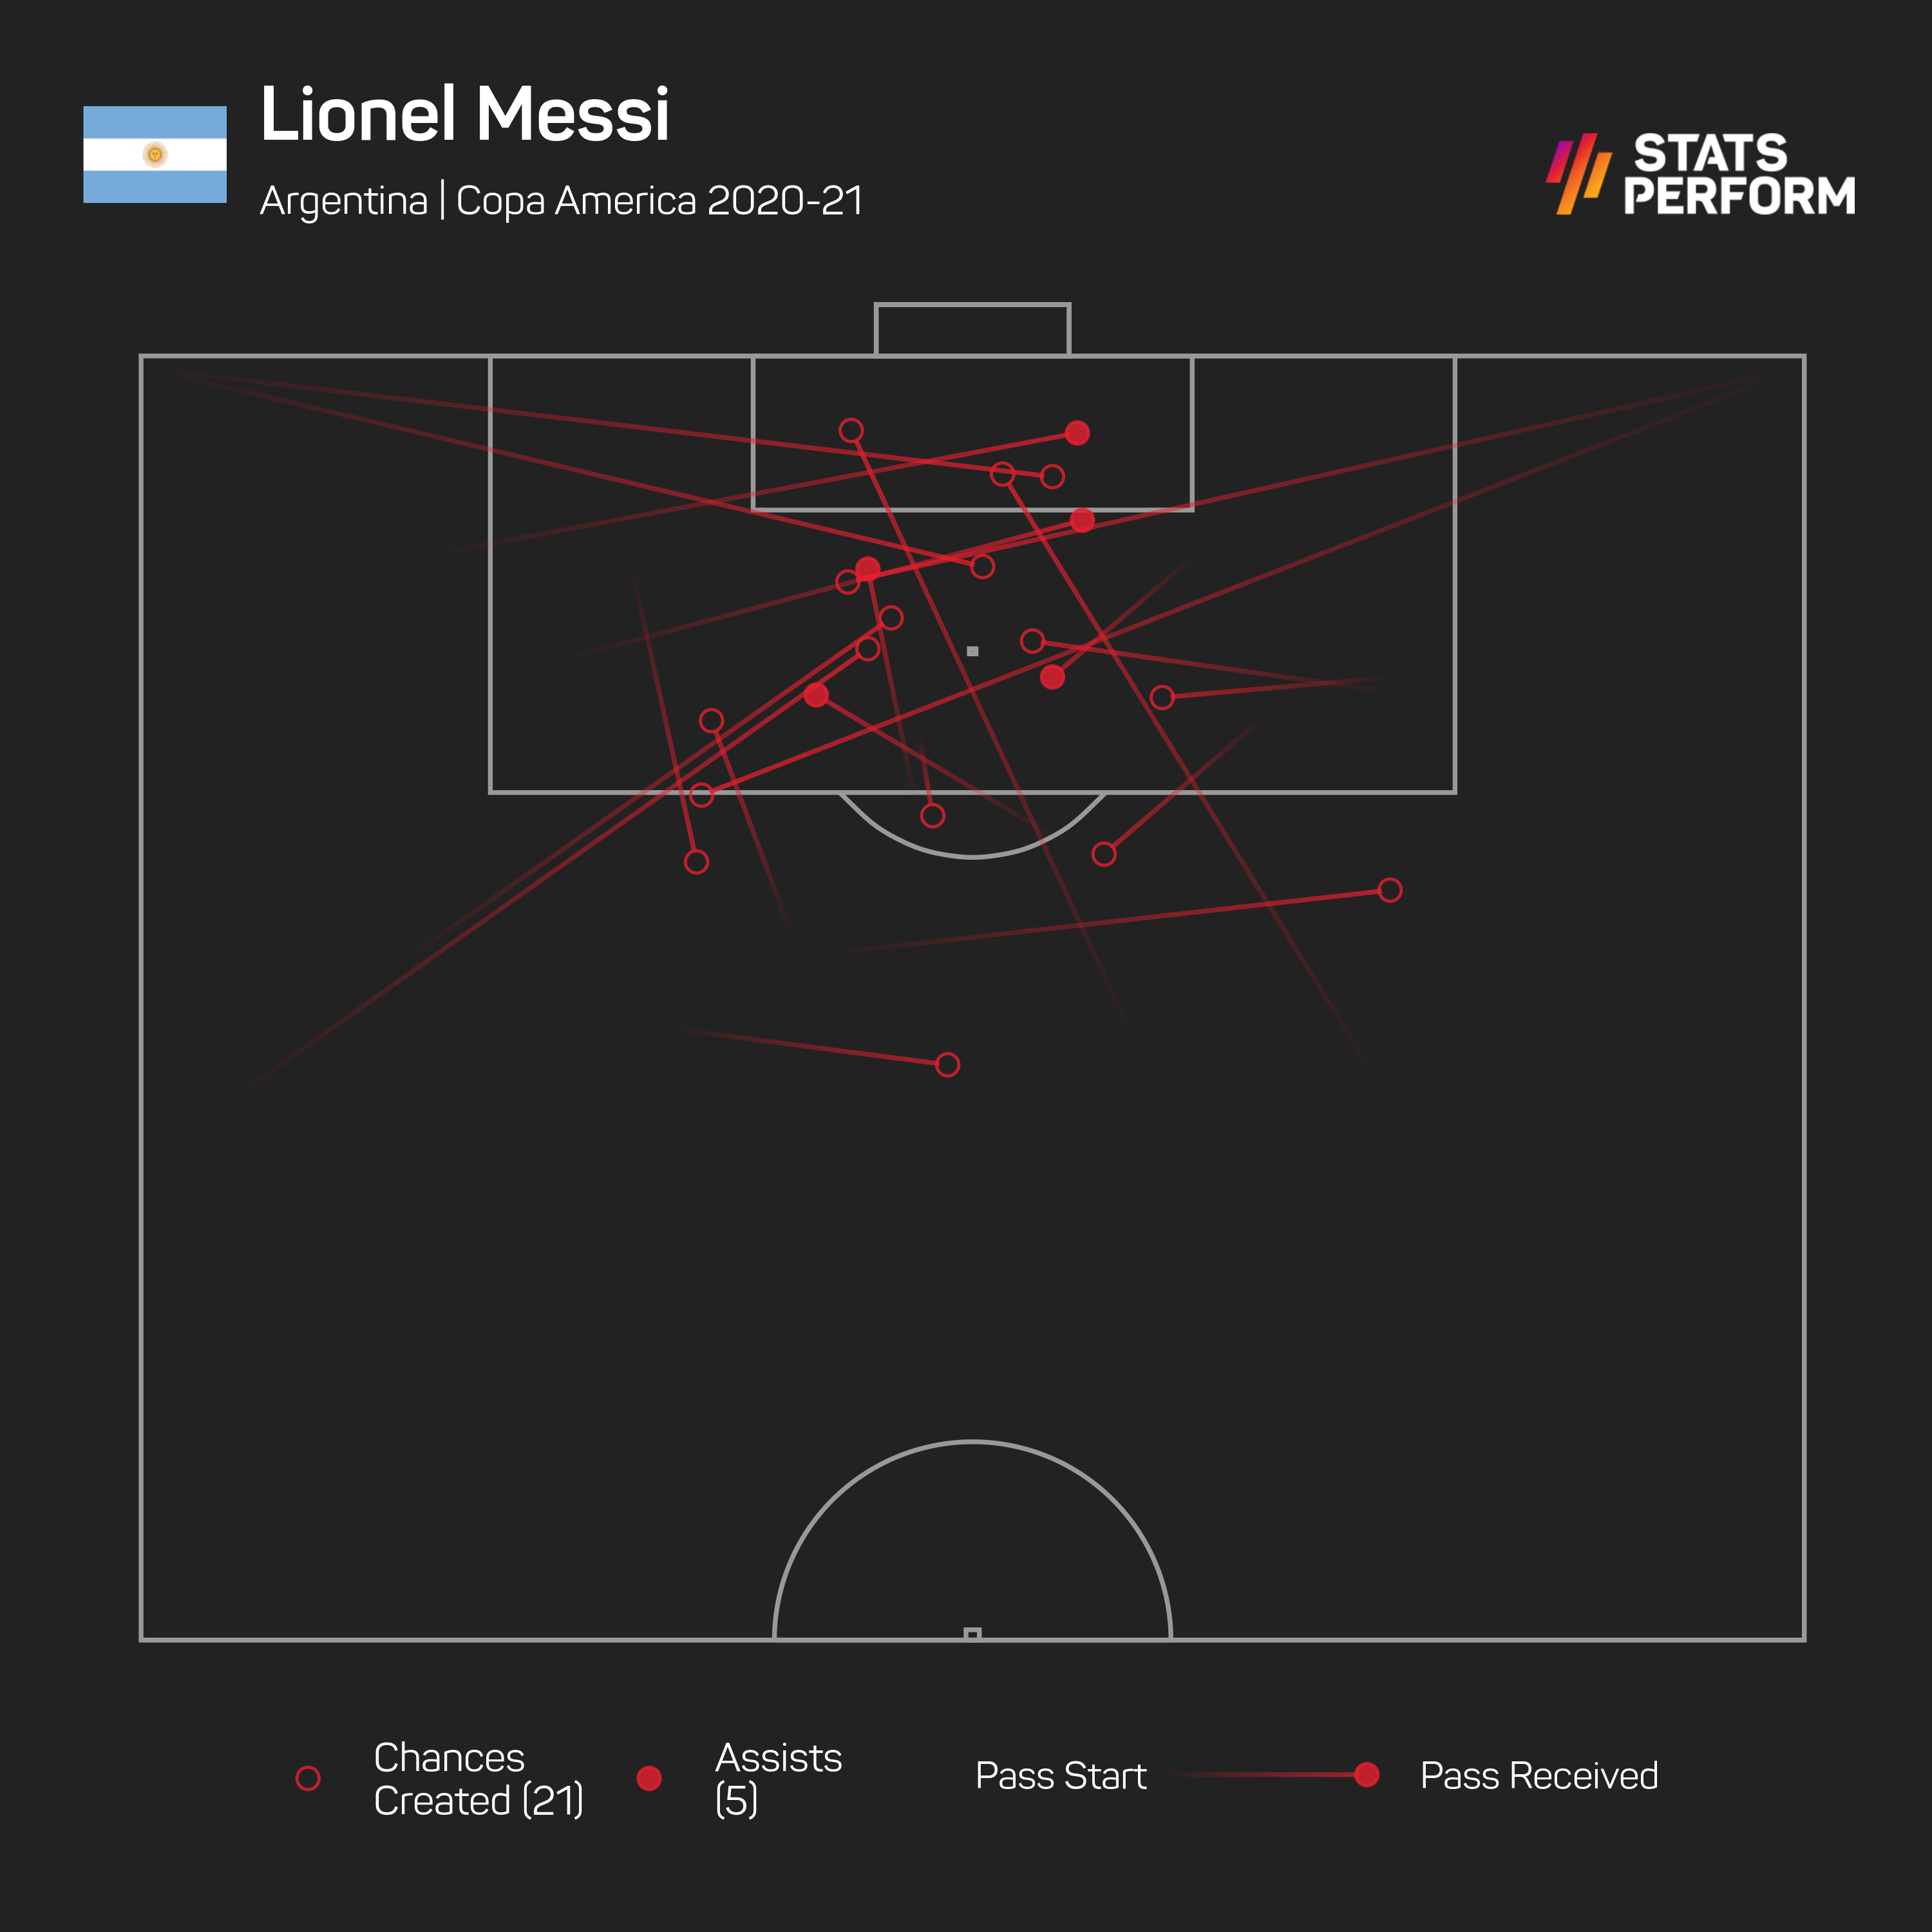 Messi created more chances than anyone else at Copa America